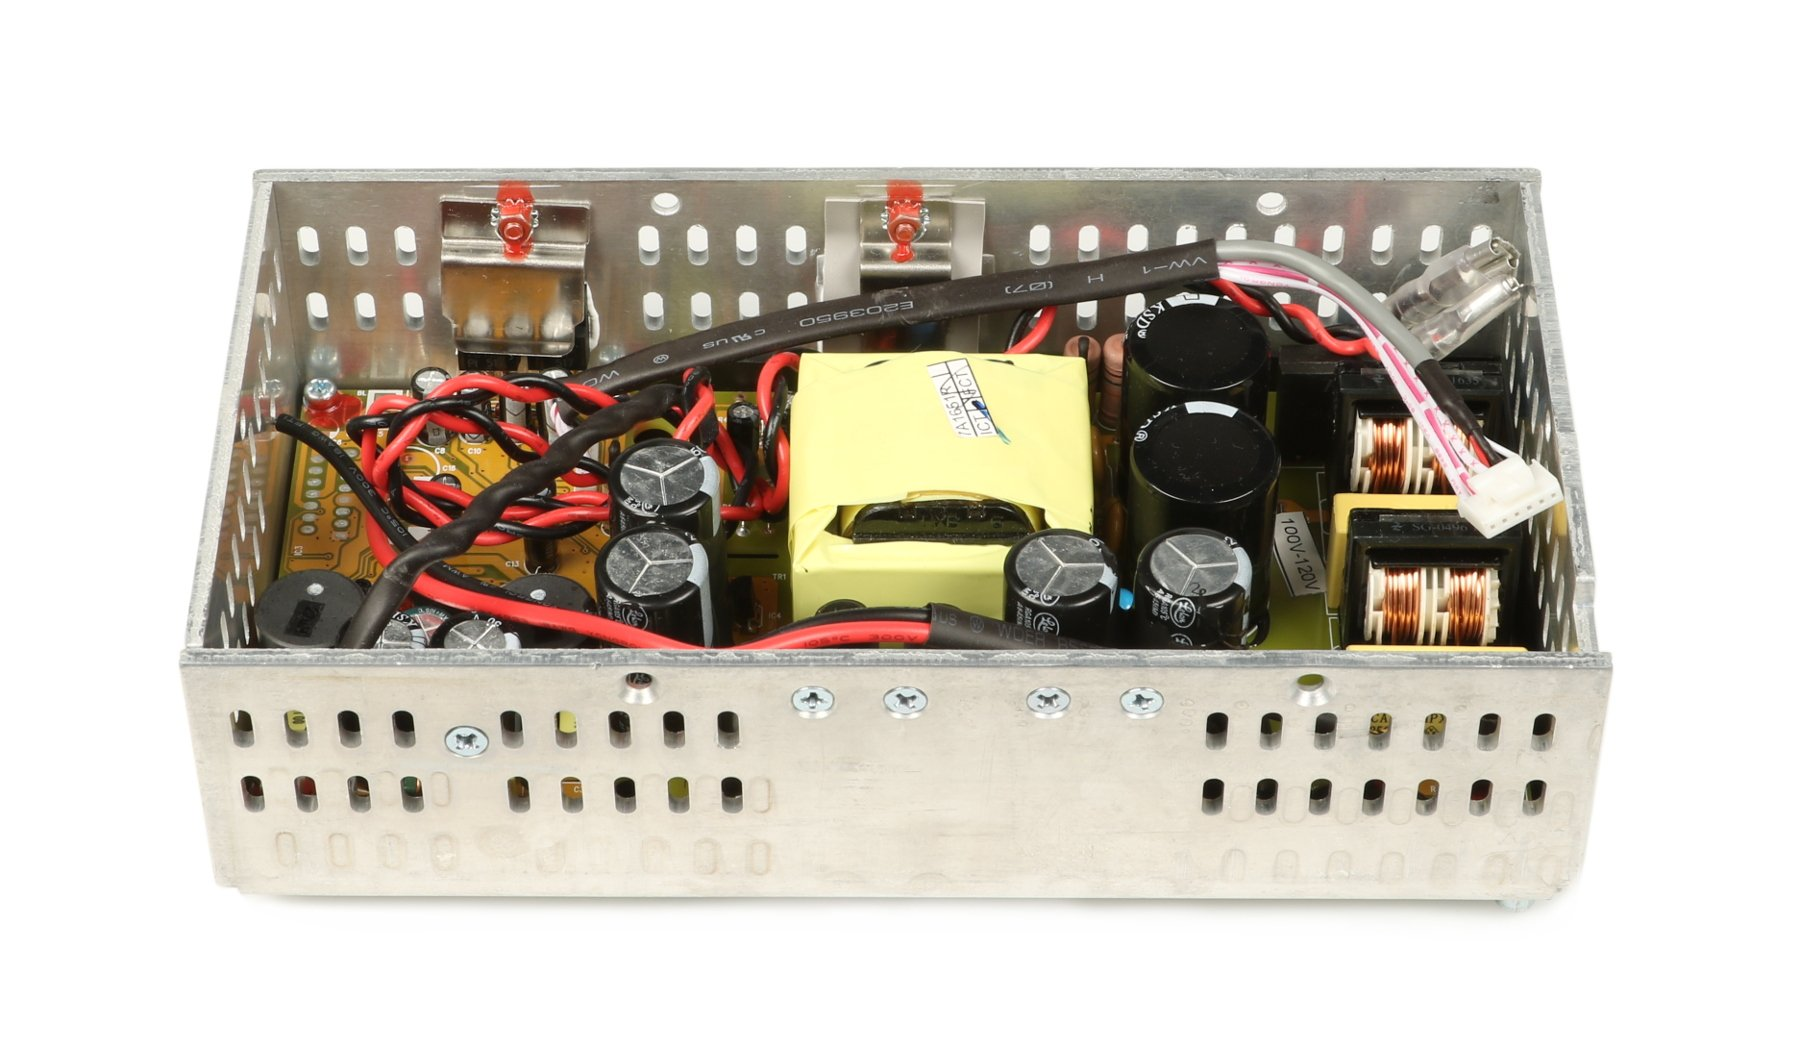 Amp Assembly for VQ1800D